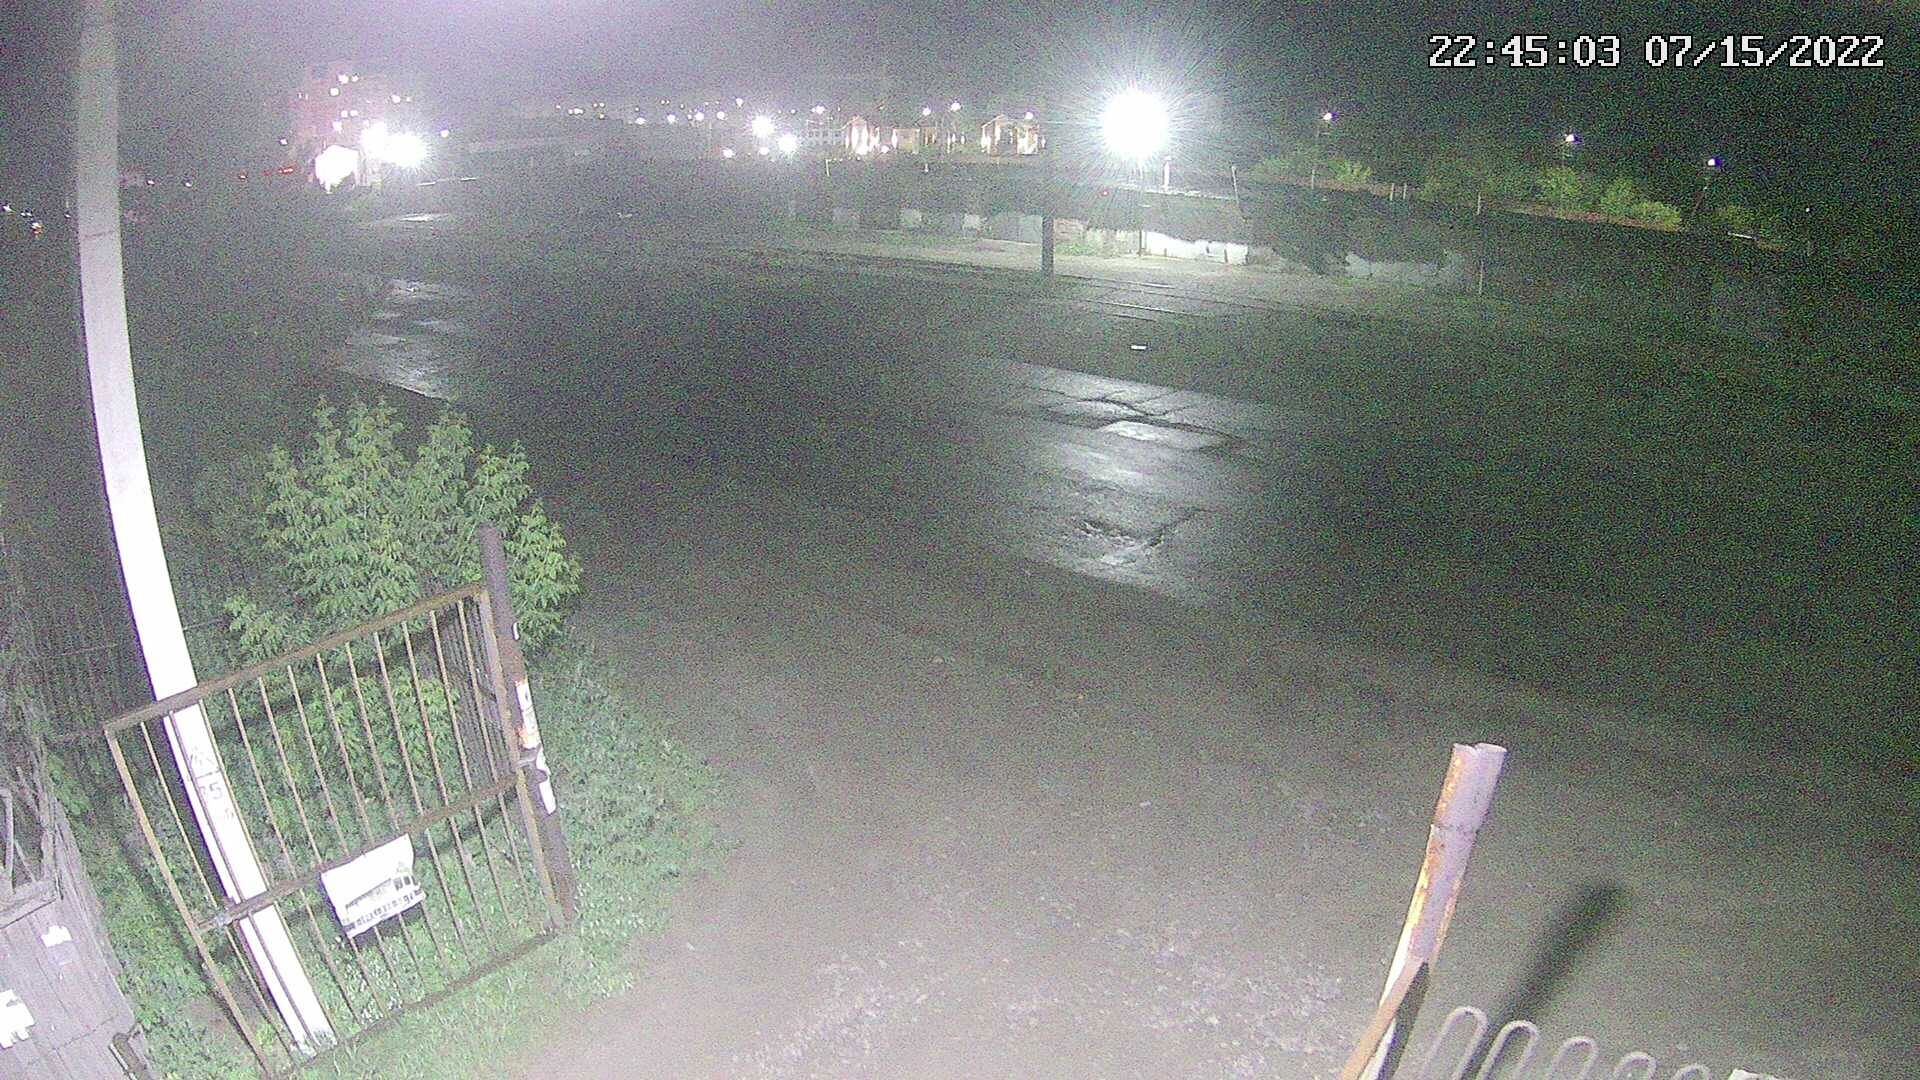 Weather webcam Garaji Kutuzova in Biysk, Altai Territory, Russia